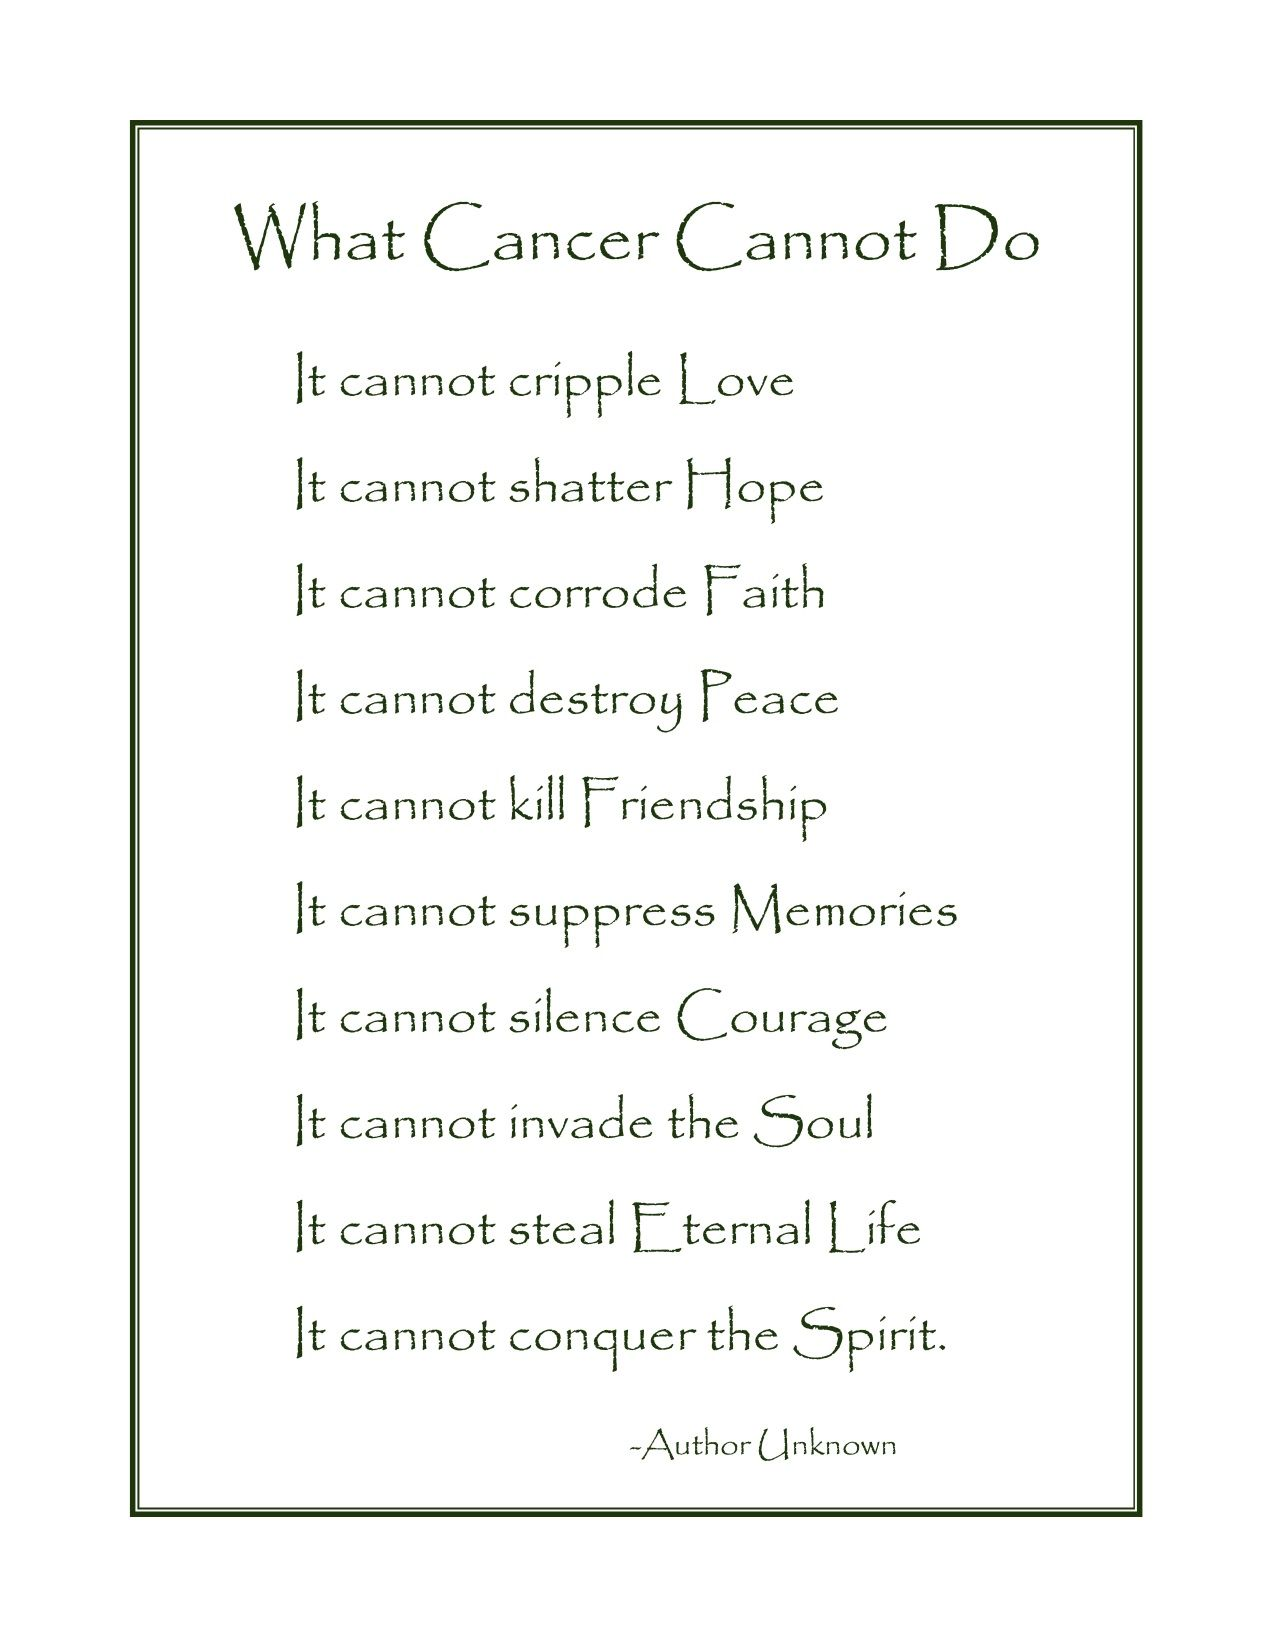 Breast Cancer Risk Factors You Cannot Change